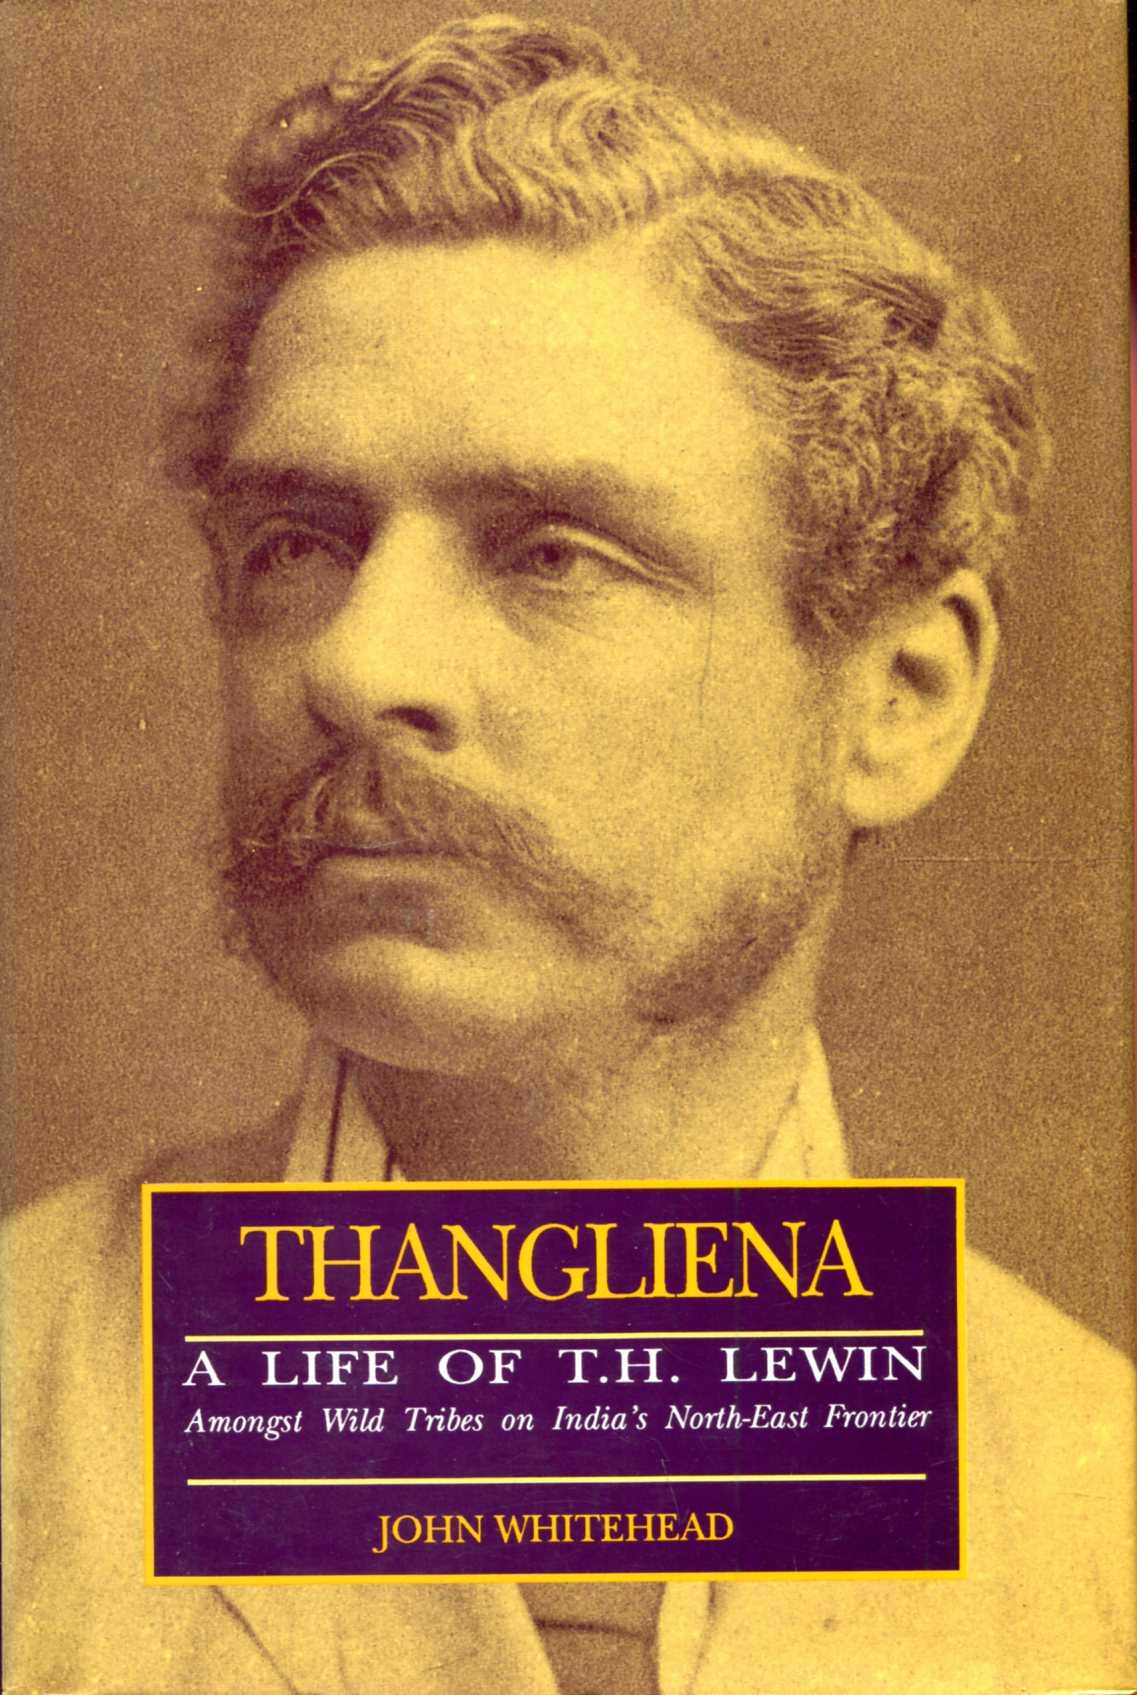 Image for Thangliena: Life of T.H. Lewin, Amongst Wild Tribes of India's North East Frontier